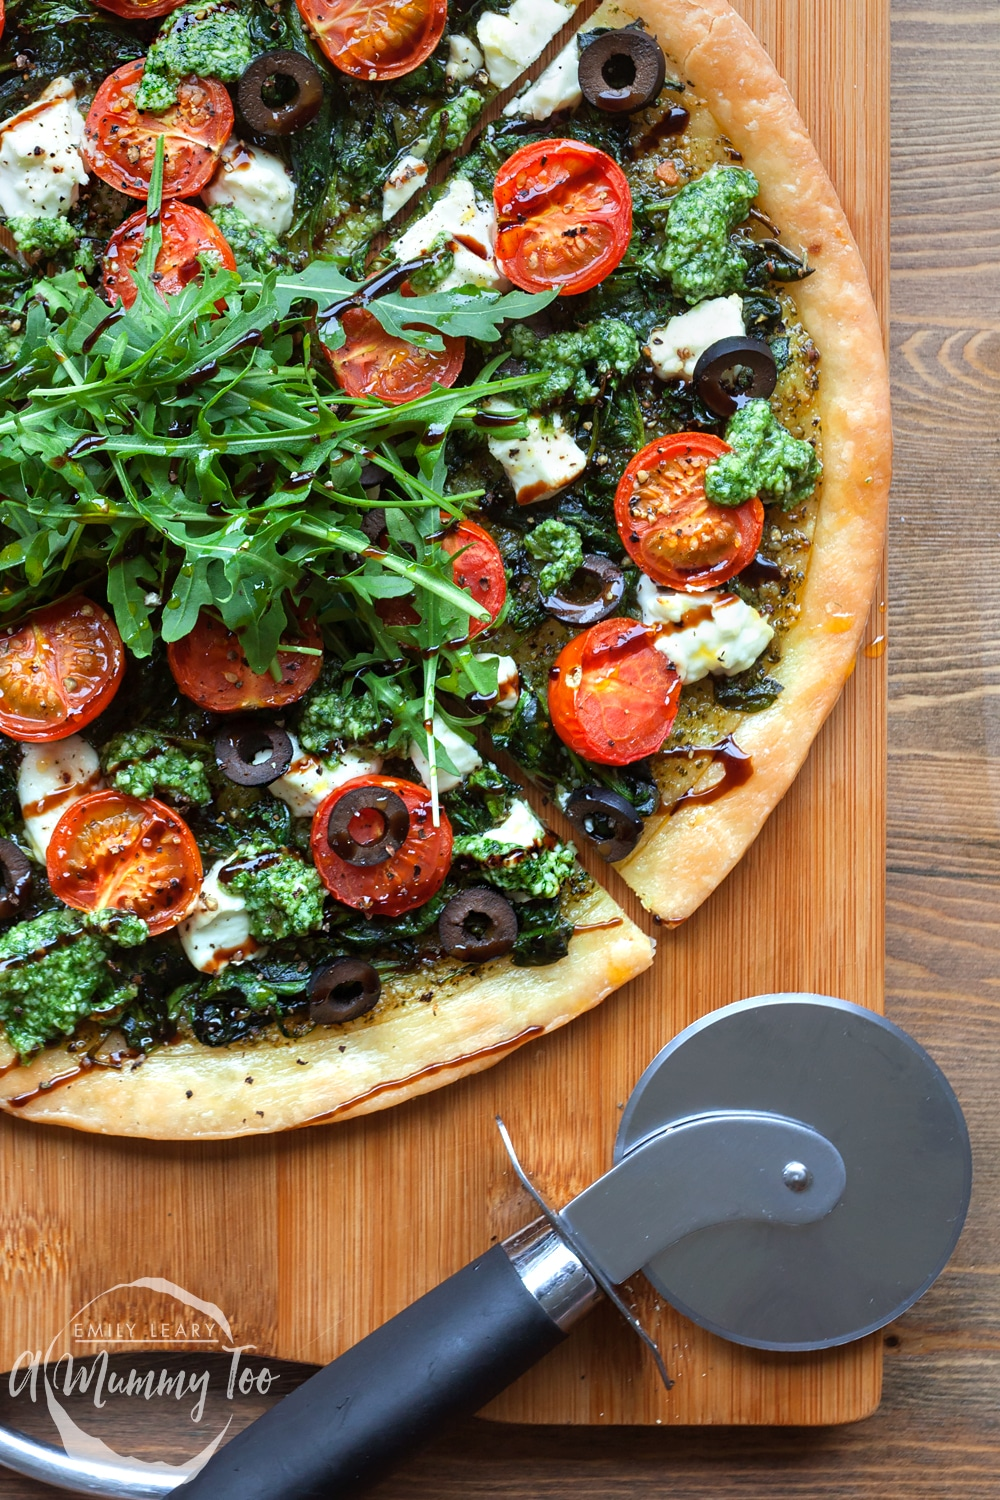 Gluten-free spinach and goat's cheese pesto tart - a delicious, vibrant gluten-free lunch!